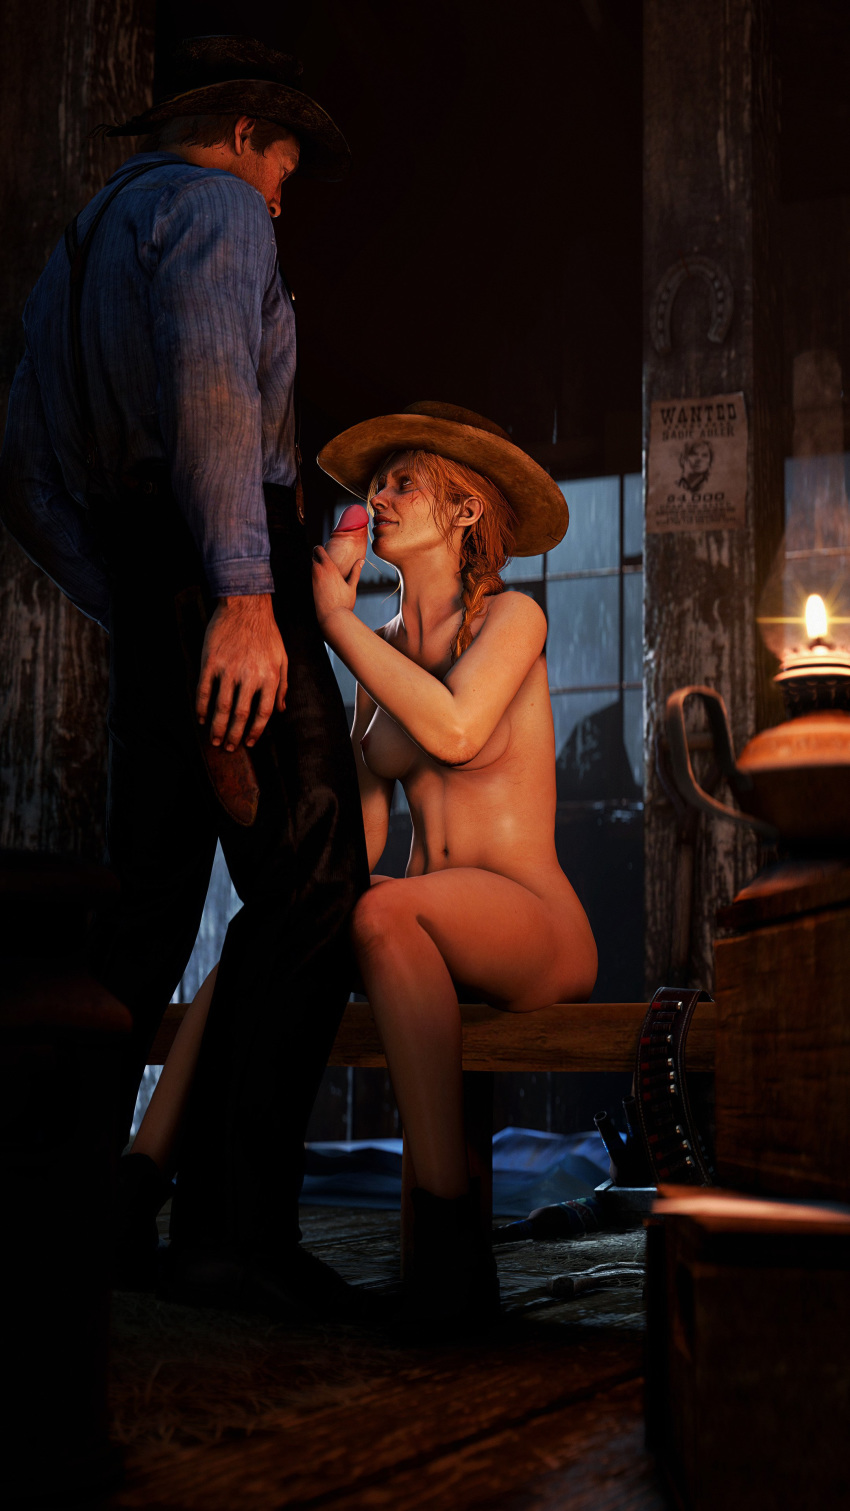 dead redemption red 2 nude How not to summon a demon lord rem galleu